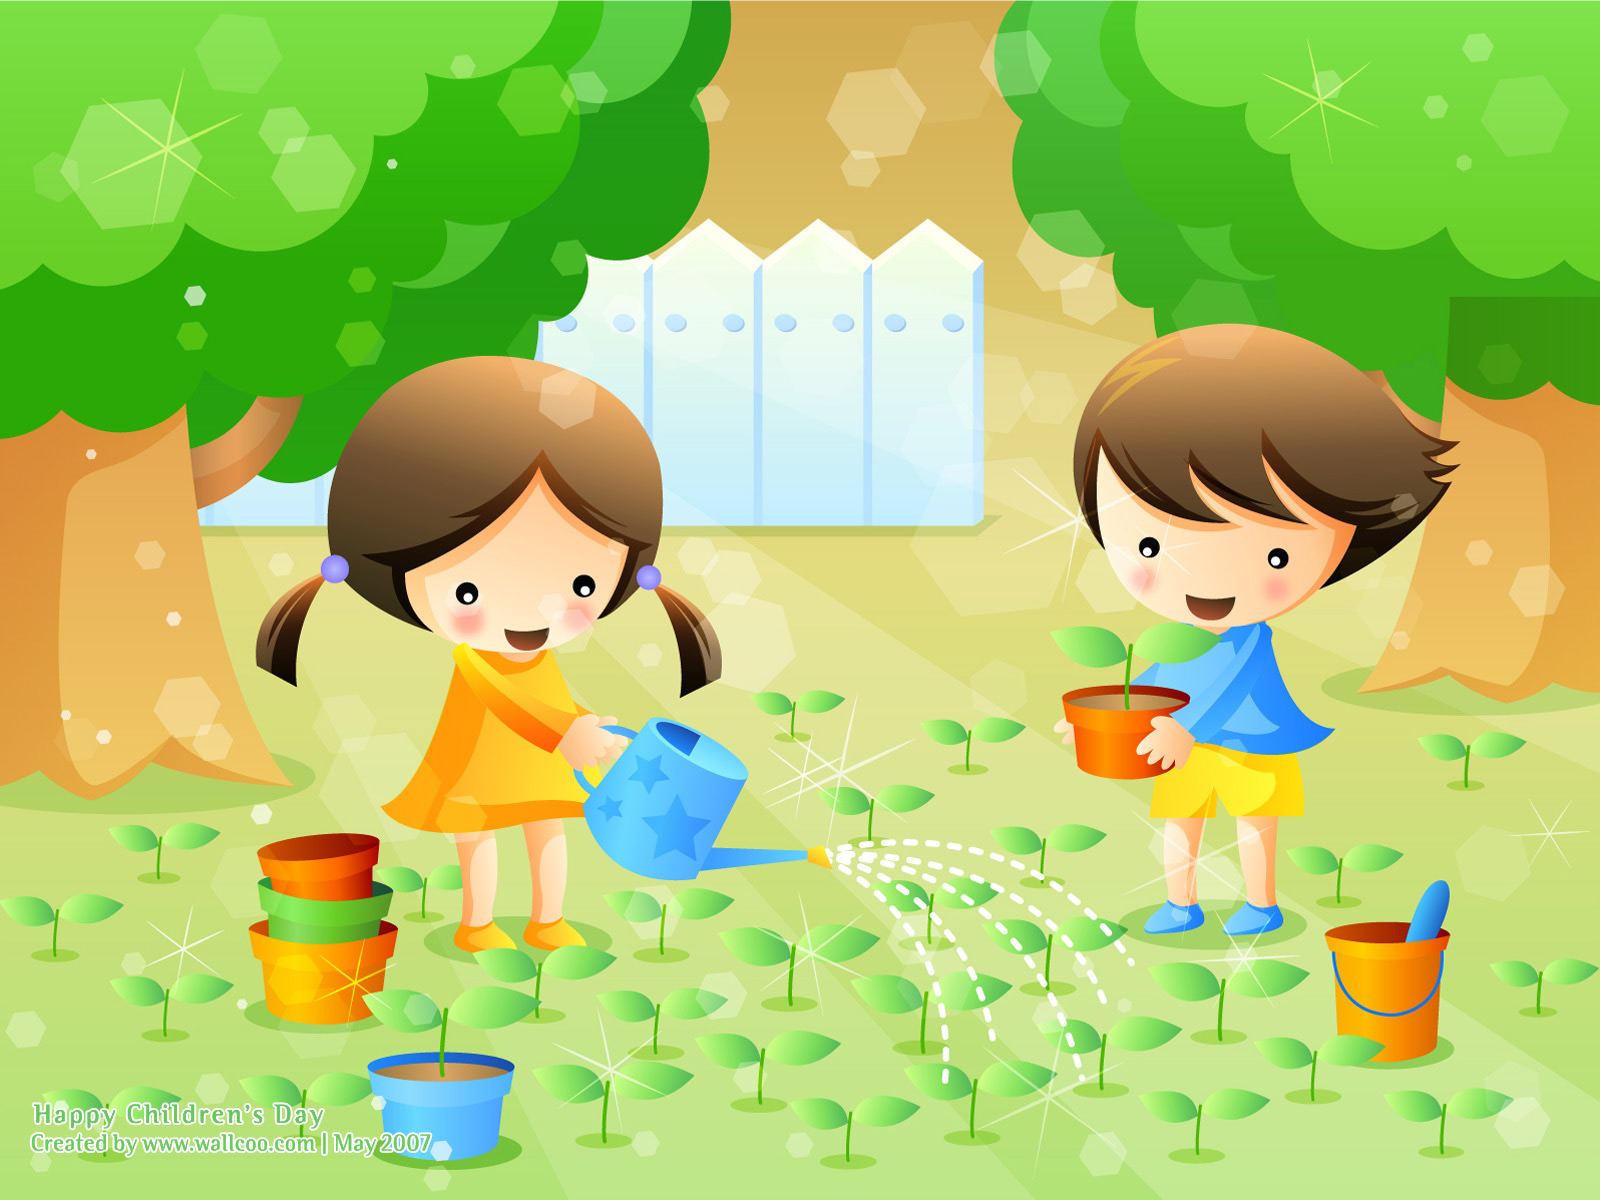 http://1.bp.blogspot.com/-gKoO167dZB8/Tq5u7db1IFI/AAAAAAAADPc/oquMNS6a-lM/s1600/Childrens_day_wishes_wallpapers_greetings_cards_kids_fun_cartoon_celebration_01.jpg